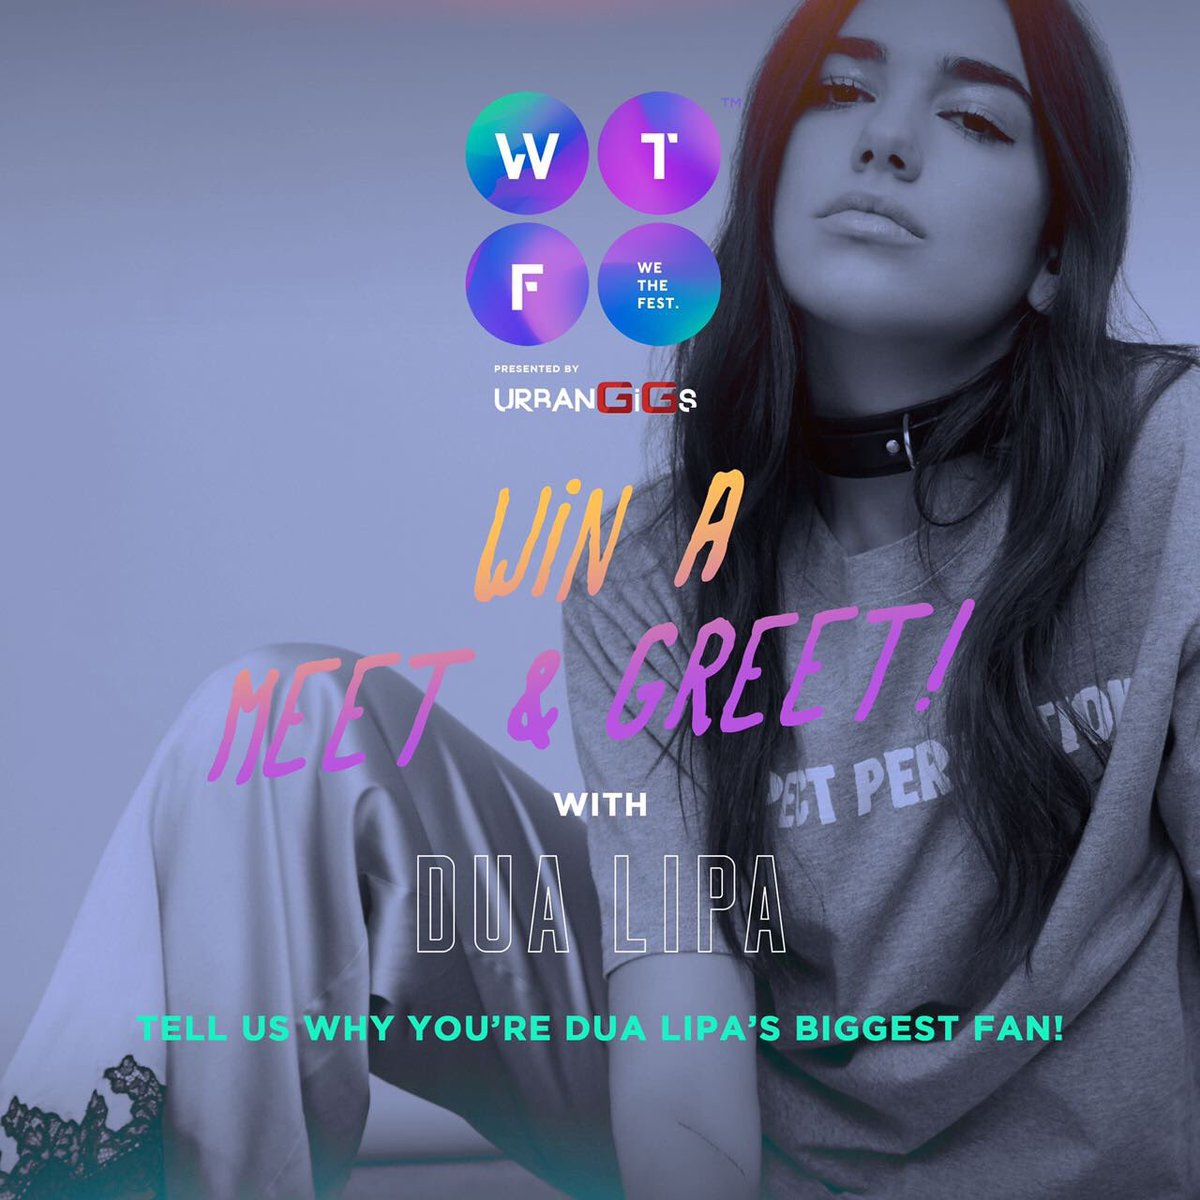 We The Fest On Twitter Our Latest Wtf17 Surprise For You You Get